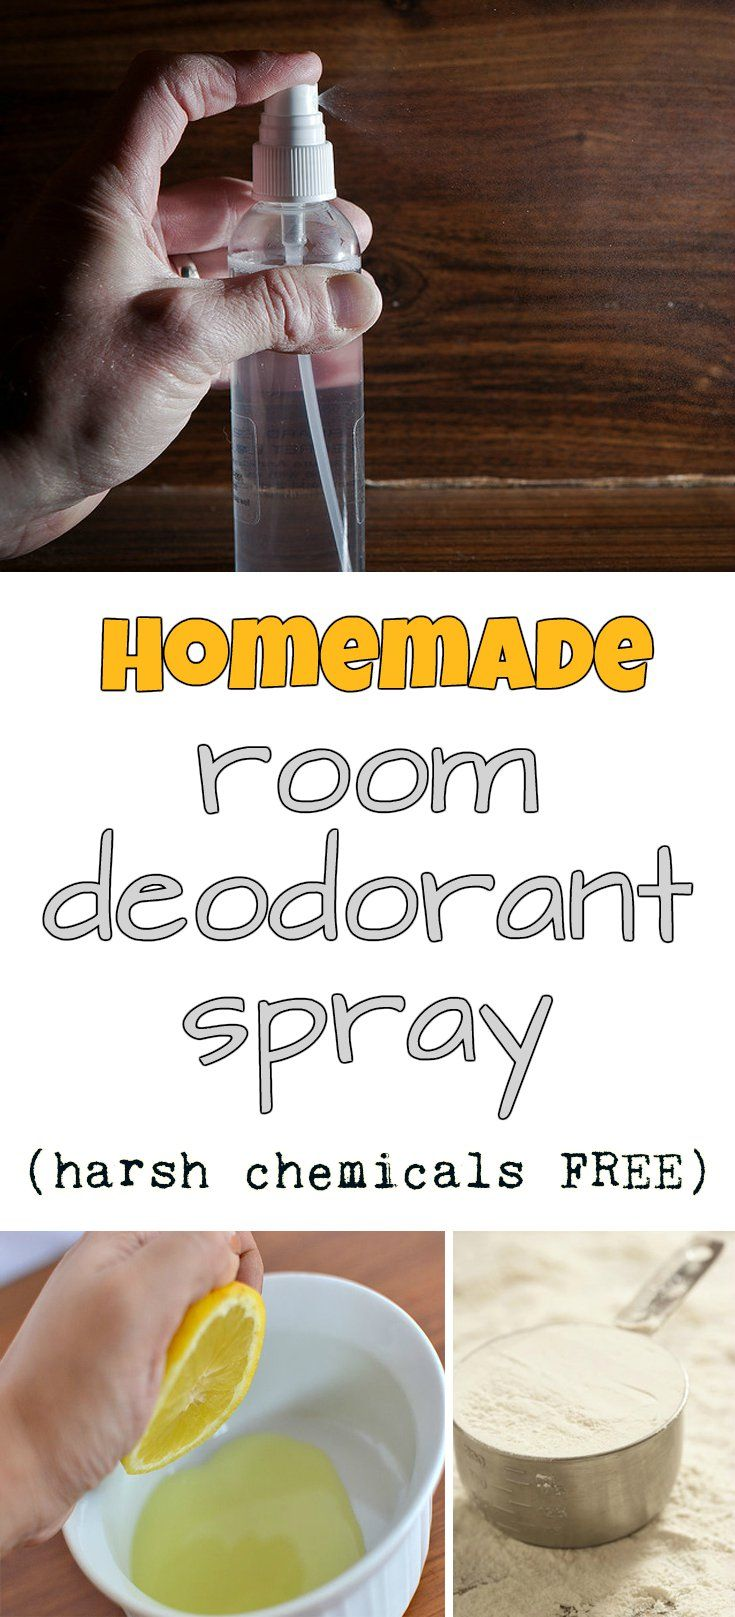 Homemade room deodorant spray (harsh chemicals free) - CleaningDIY.net